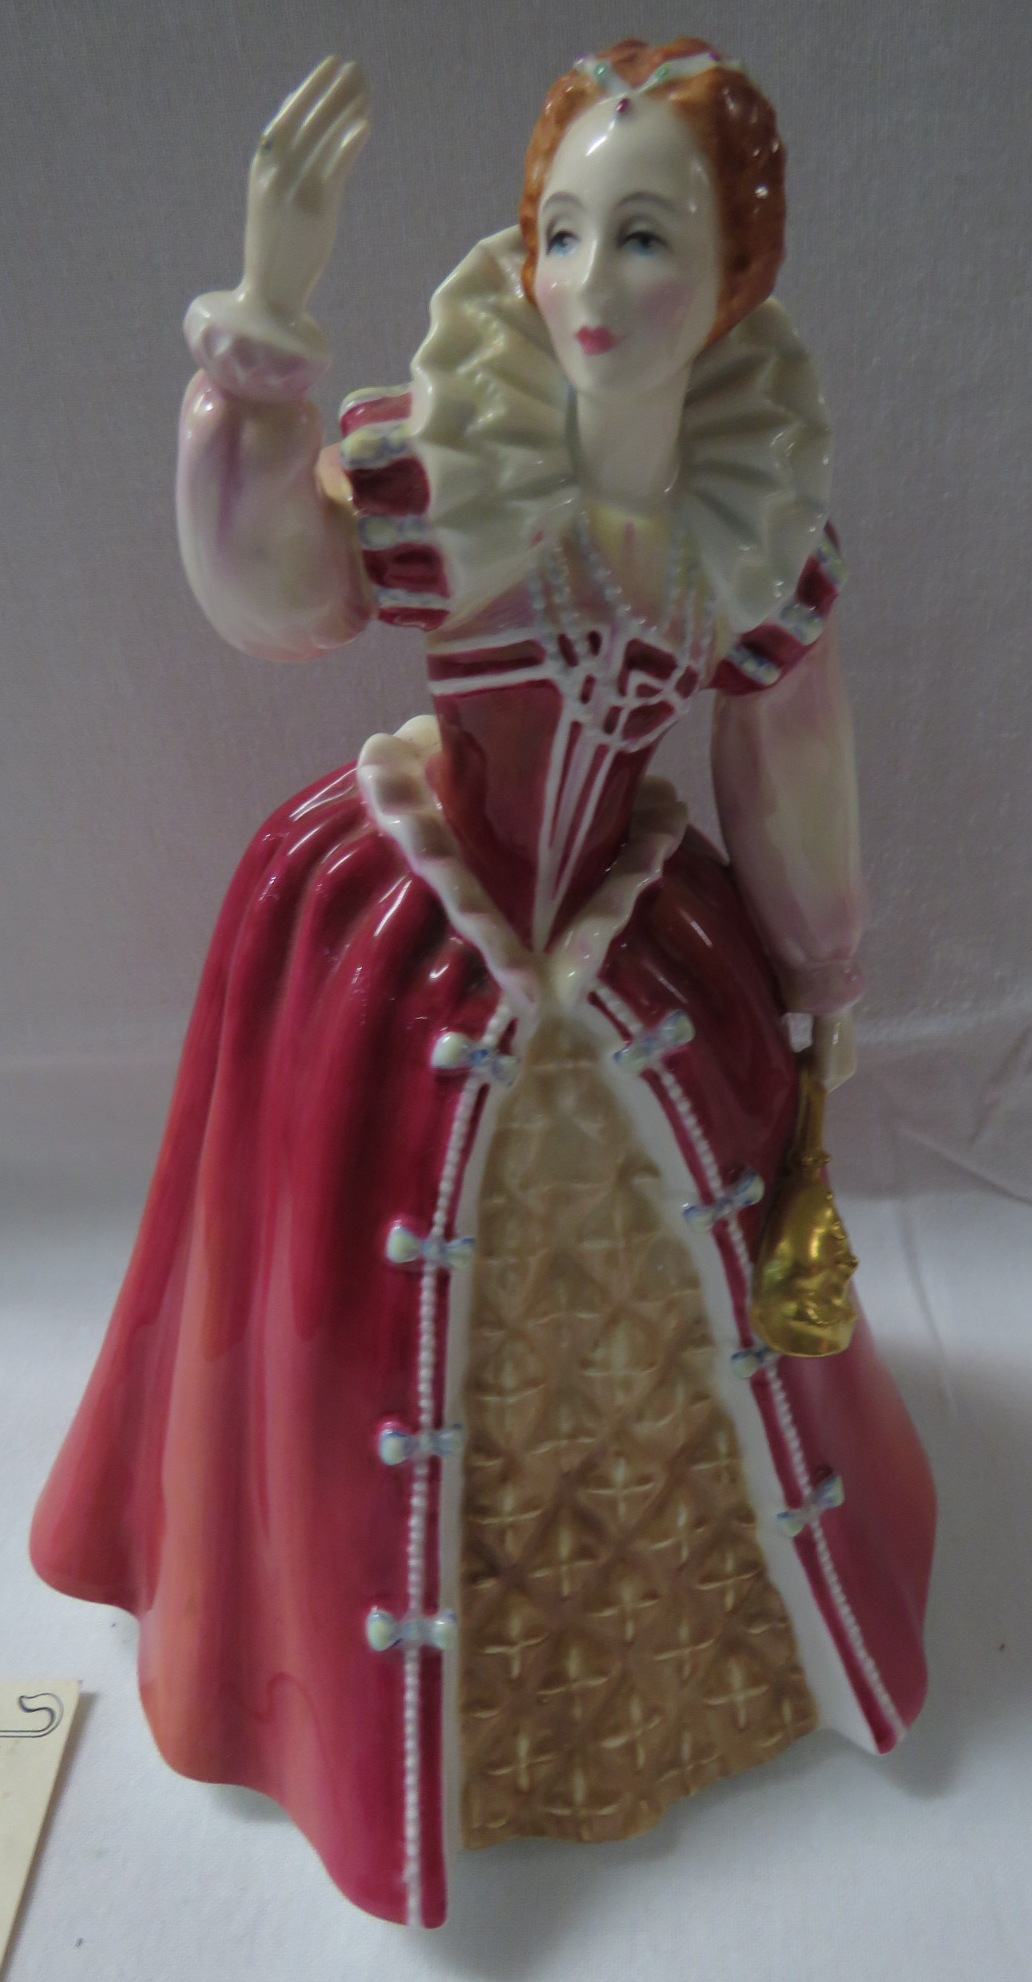 Lot 25 - Royal Doulton limited edition Queens of the Realm figure Elizabeth I, HN 3099, numbered 741/5000,